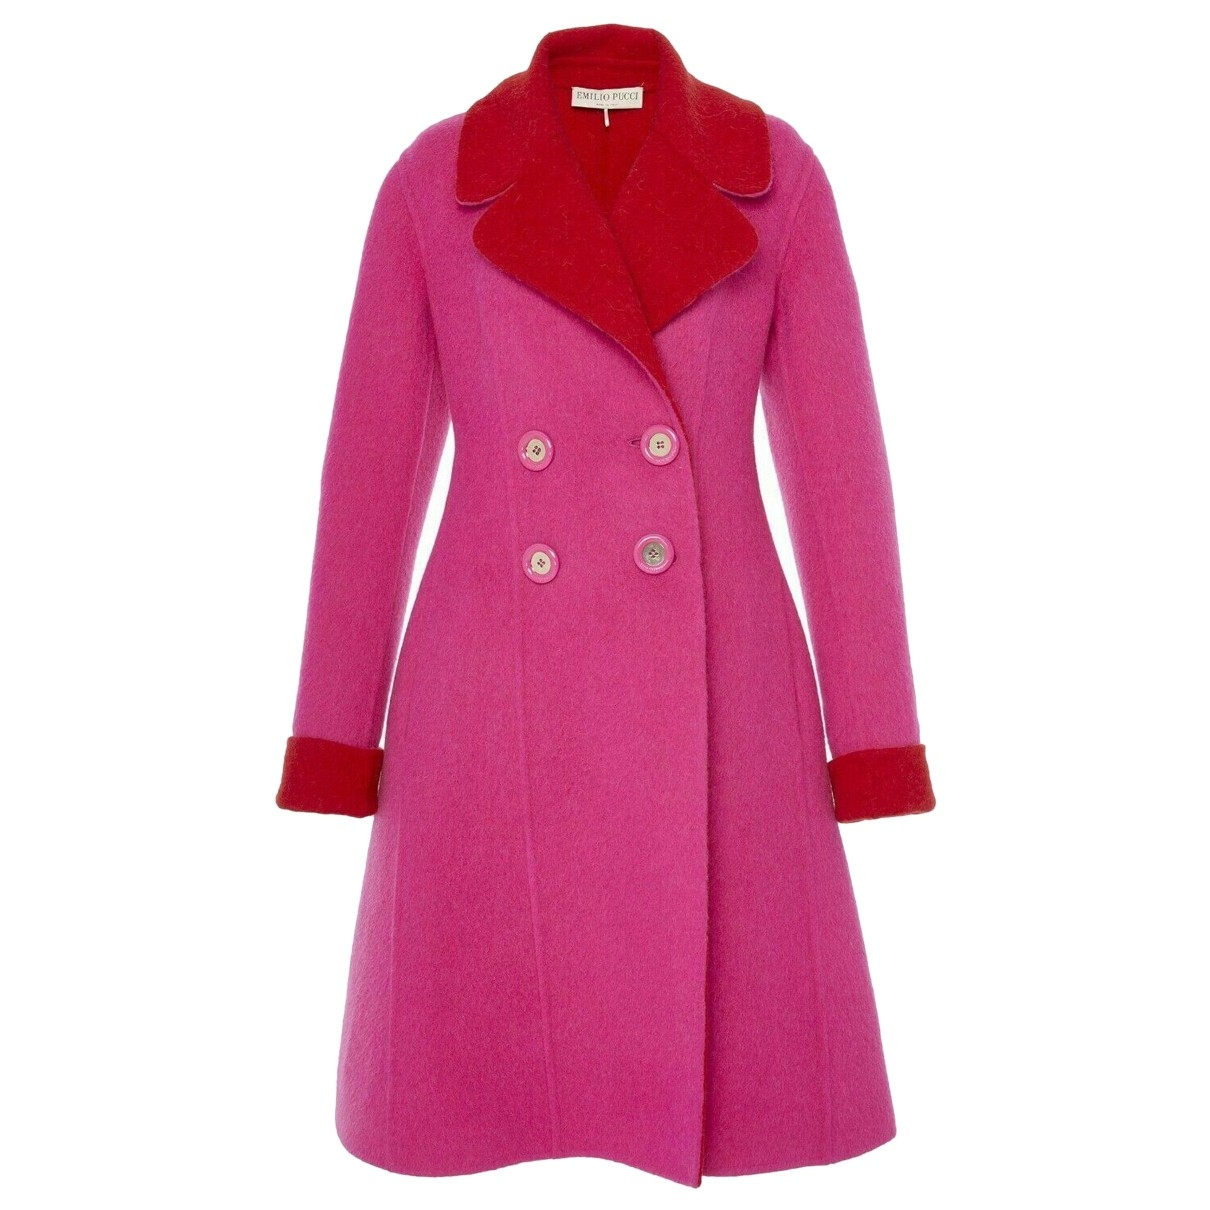 Emilio Pucci \N Pink Wool coat for Women 40 IT